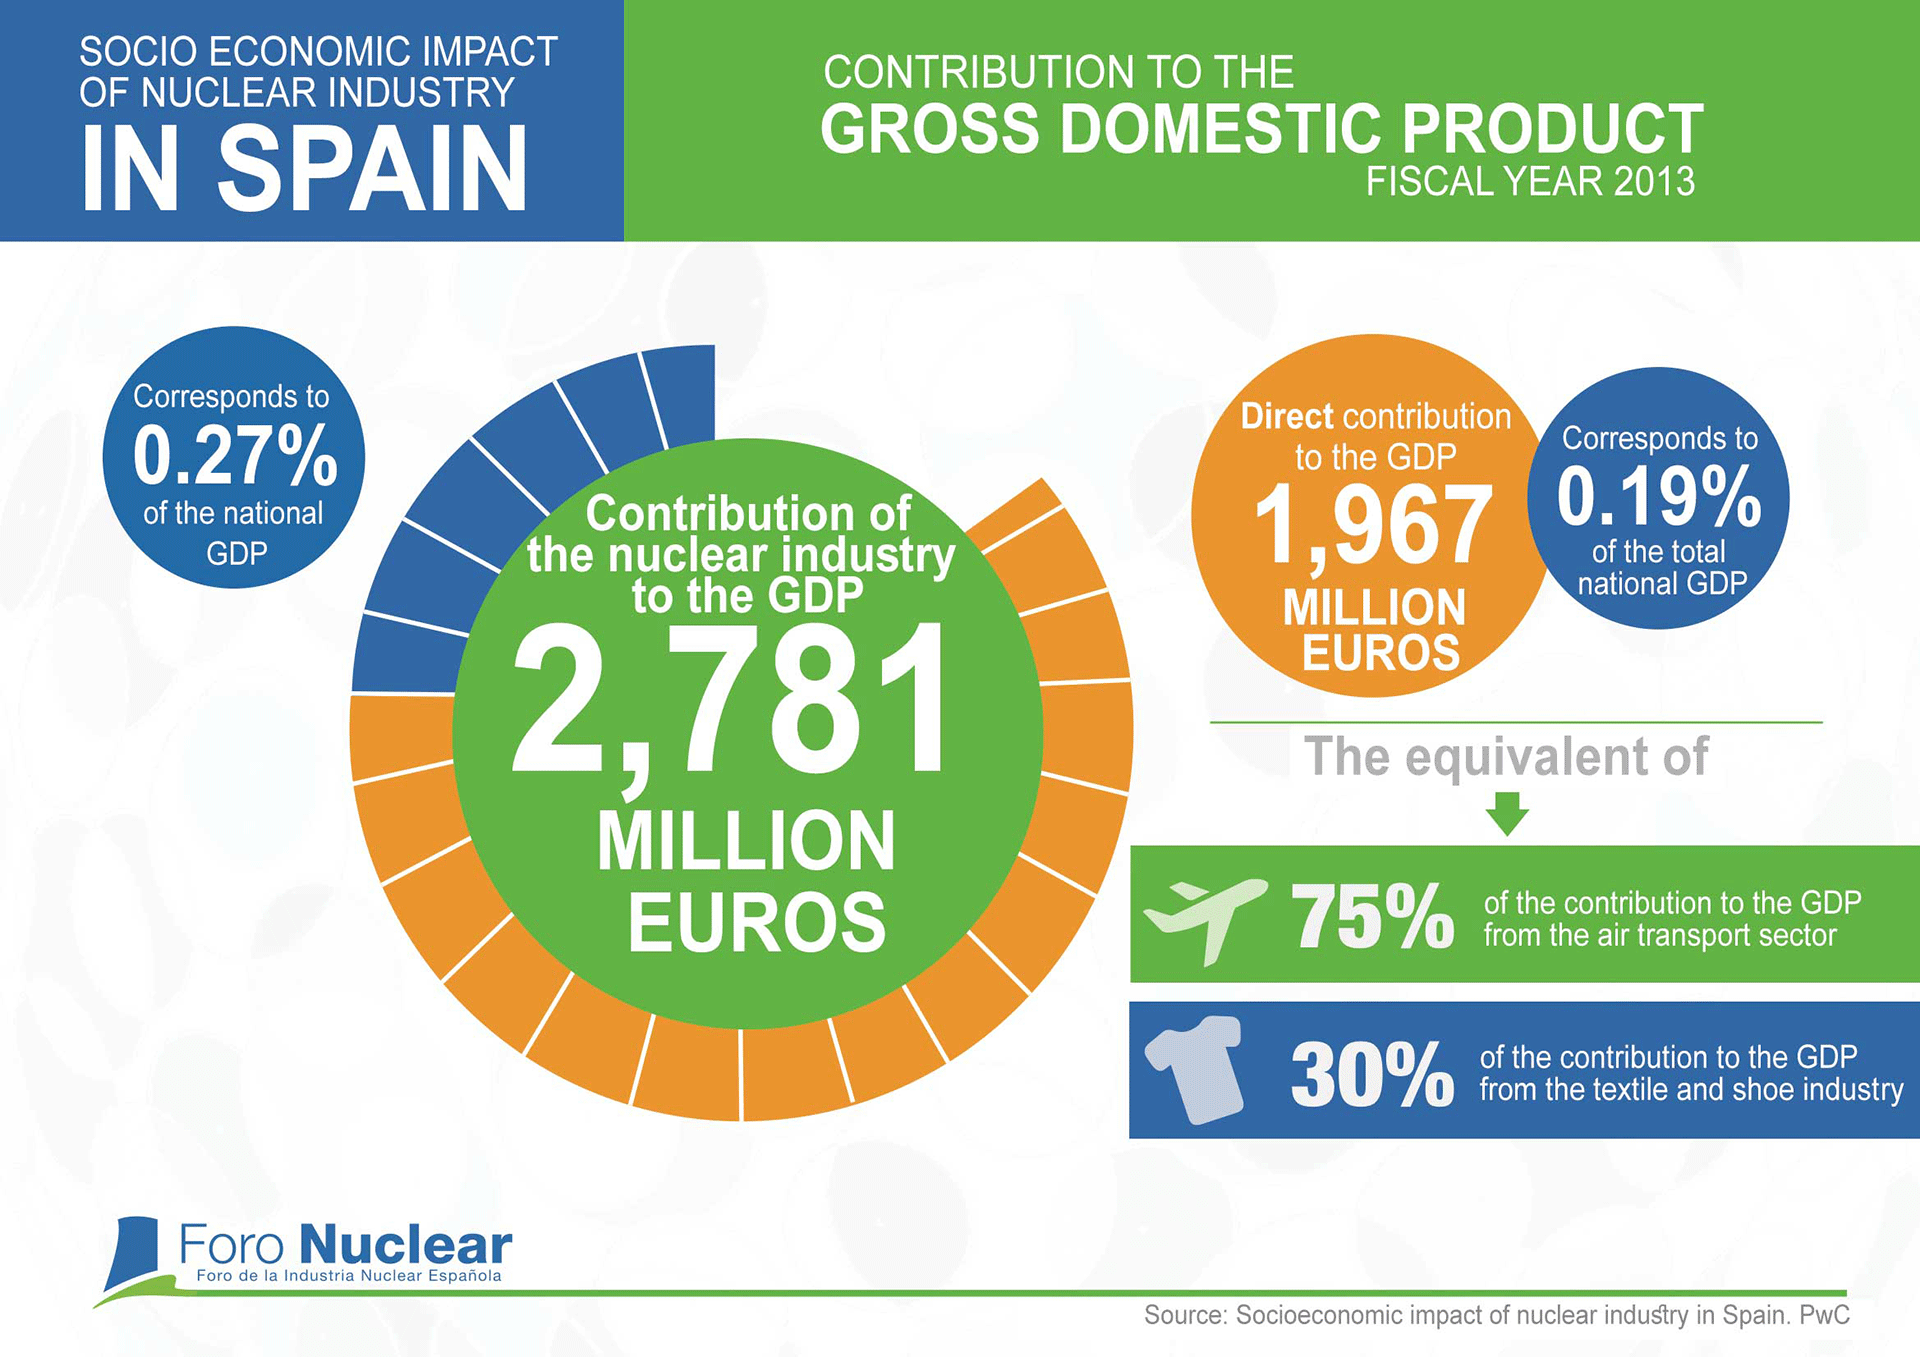 Contribution to GDP of the Spanish nuclear industry